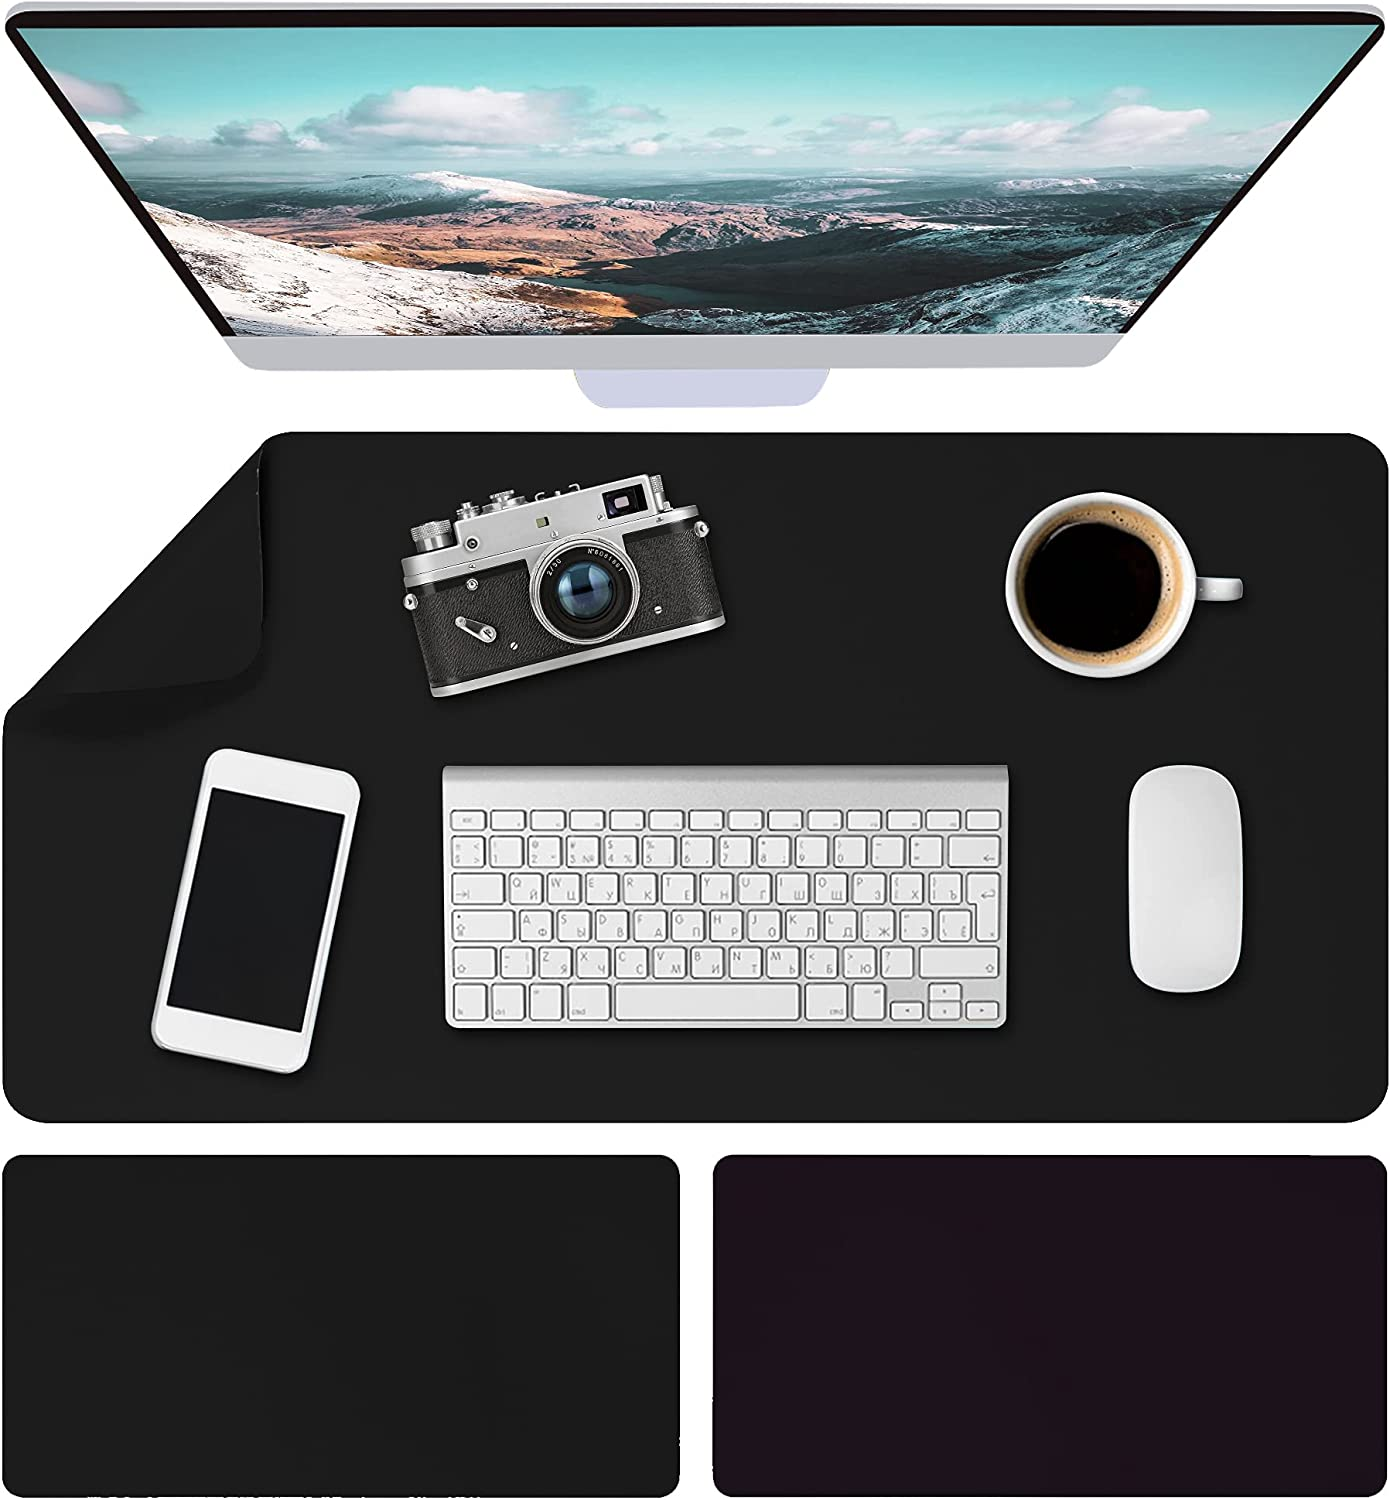 Desk Pad, Dual-Sided Office Desk Mat Waterproof and Non-Slip Desk Blotter Protector Durable Faux Leather Desk Writing Mouse Pad for Office and Home Black (31.5